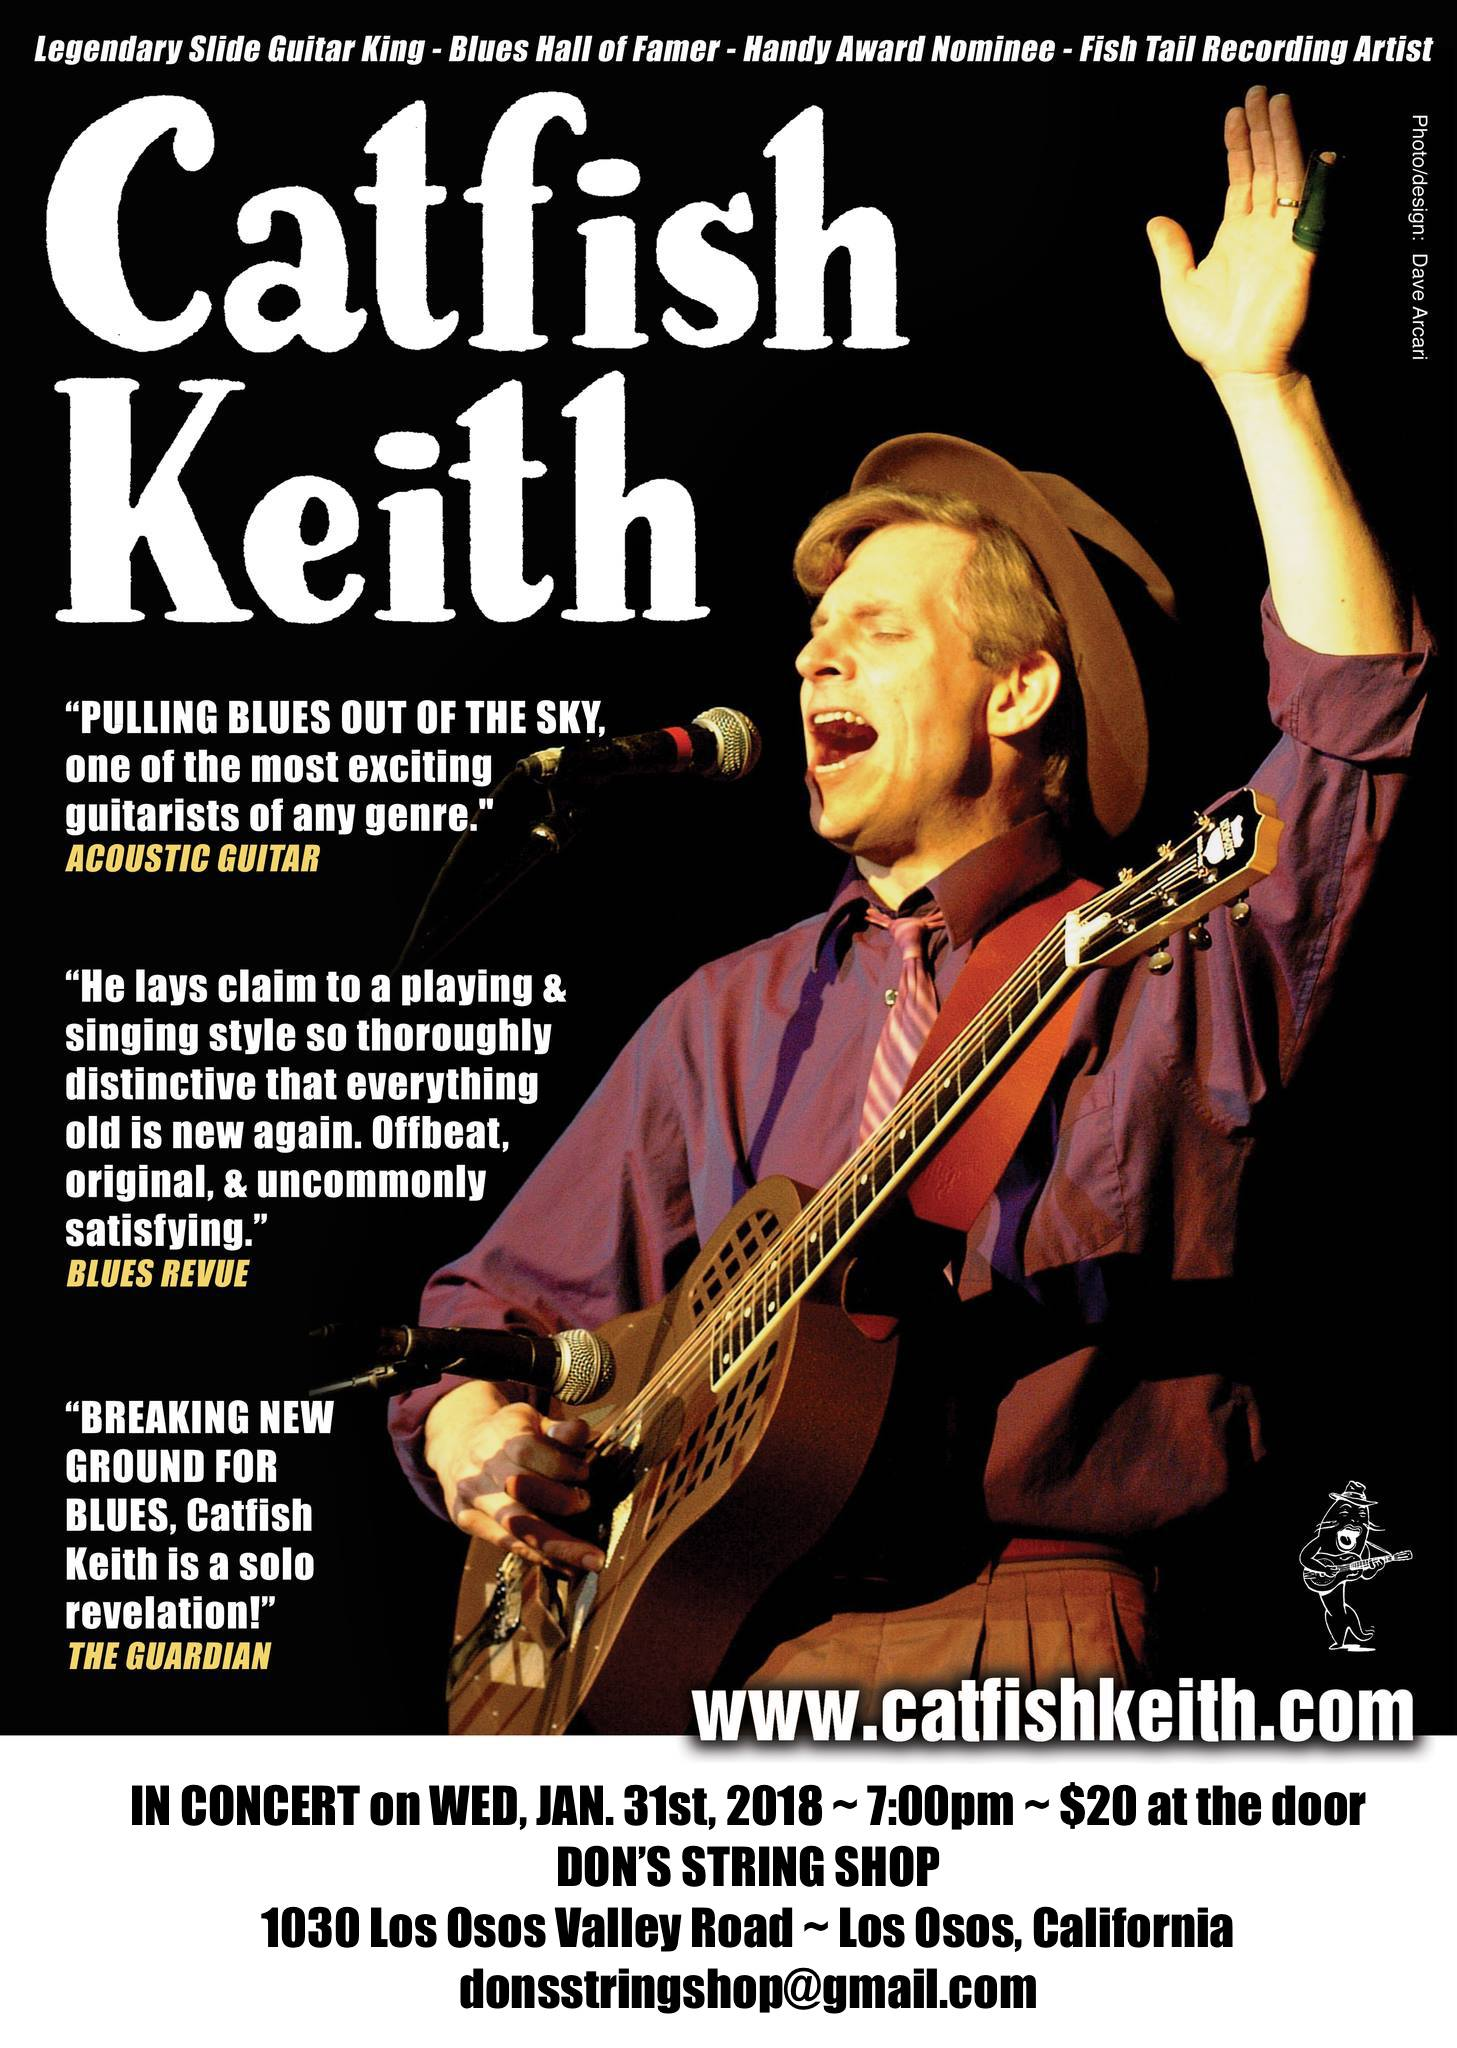 Catfish Keith Poster for Don's String Shop, Jan. 31, 2018